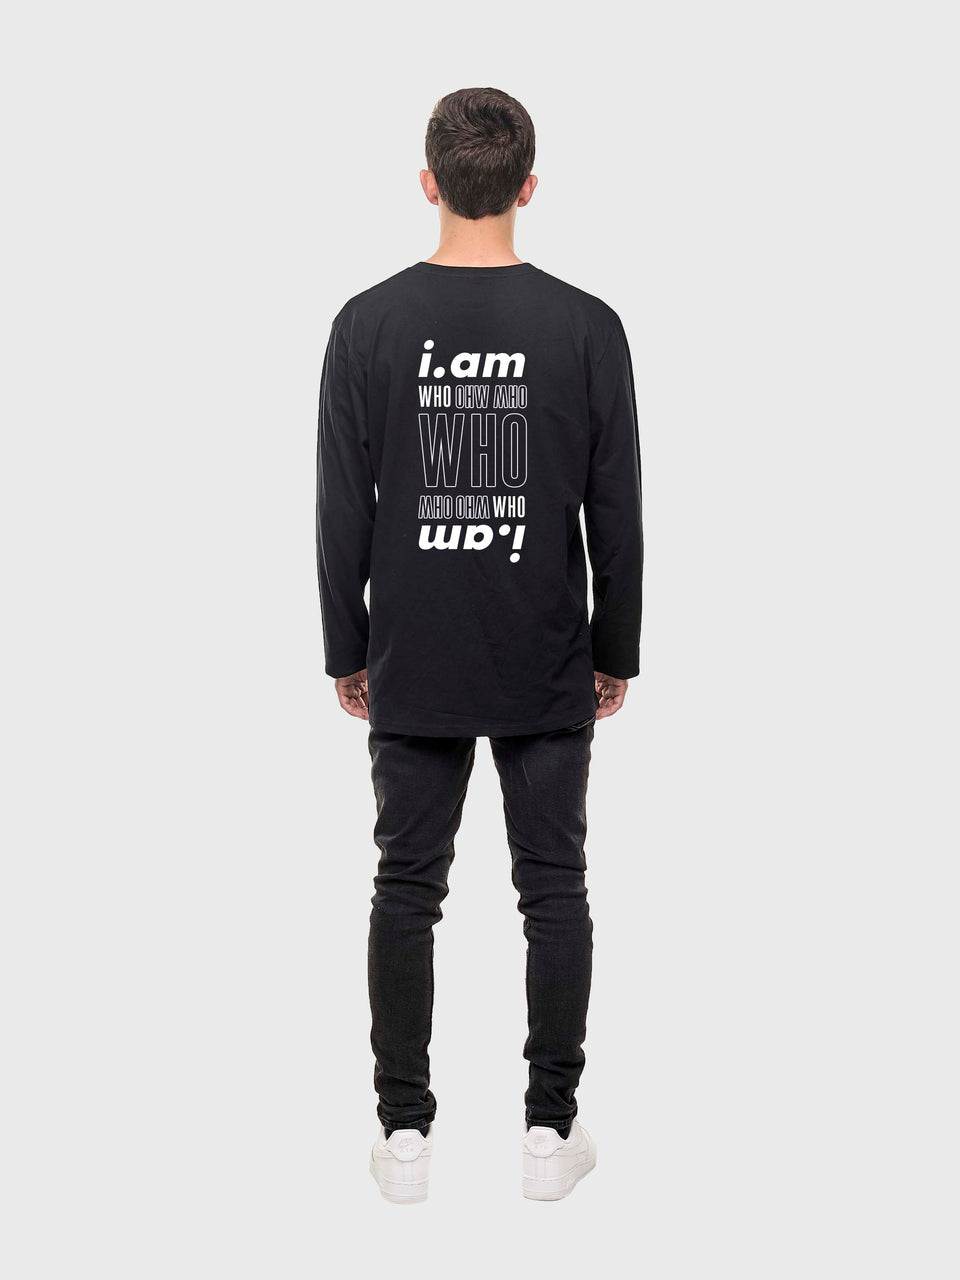 I am who I am - Black - Unisex long sleeve T